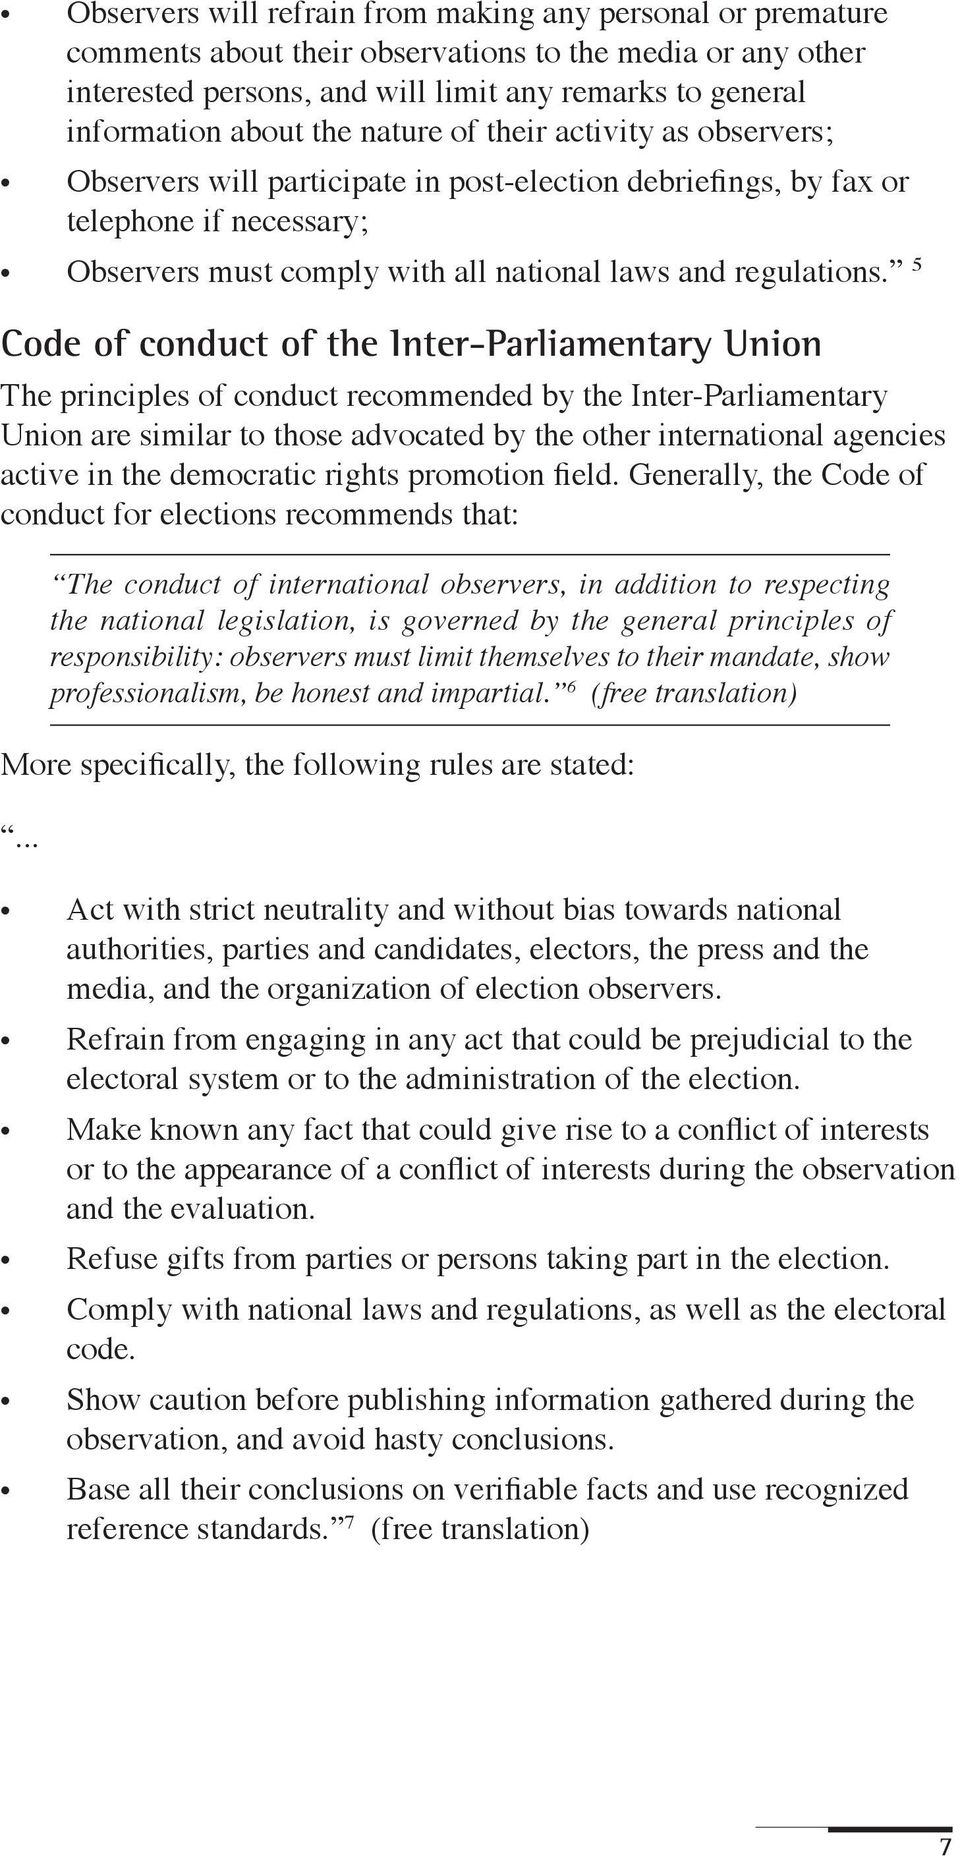 5 Code of conduct of the Inter-Parliamentary Union The principles of conduct recommended by the Inter-Parliamentary Union are similar to those advocated by the other international agencies active in